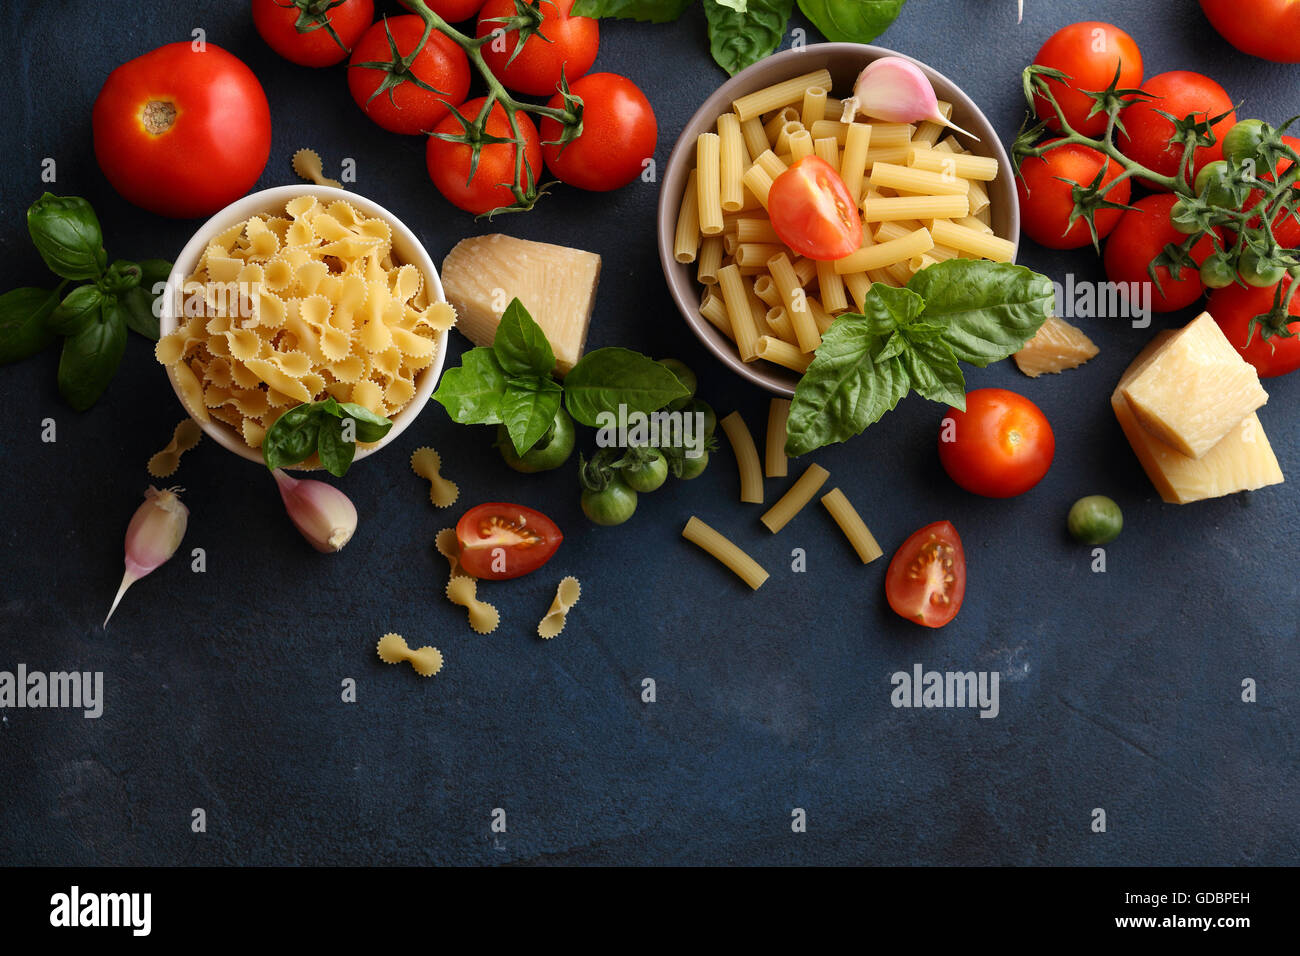 pasta and cooking ingredients, food background - Stock Image